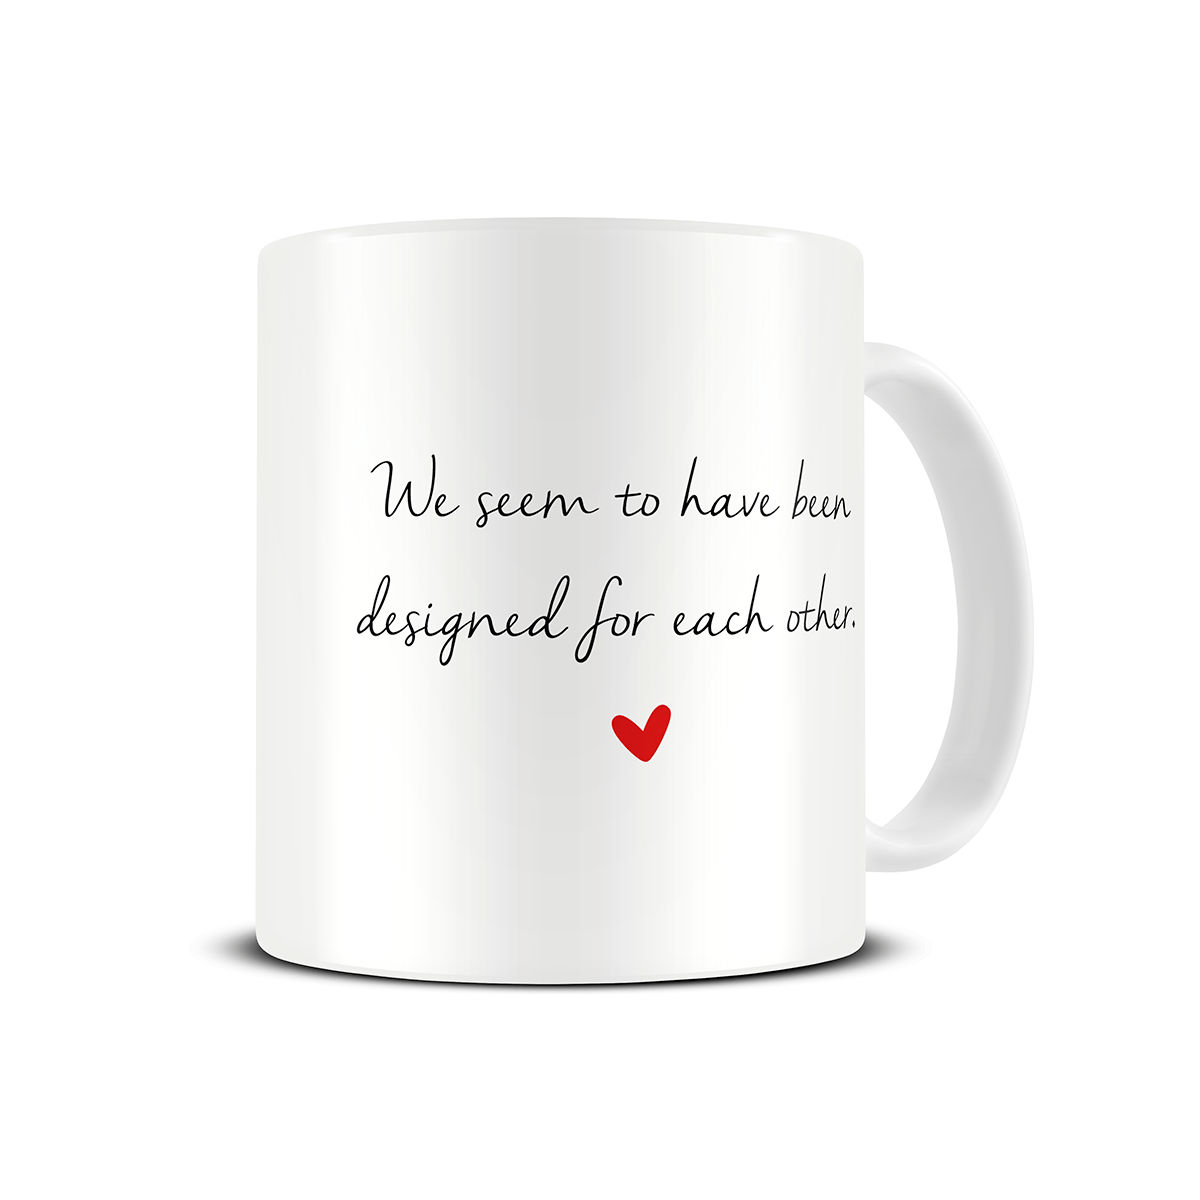 his-and-hers-romantic-gift-mug